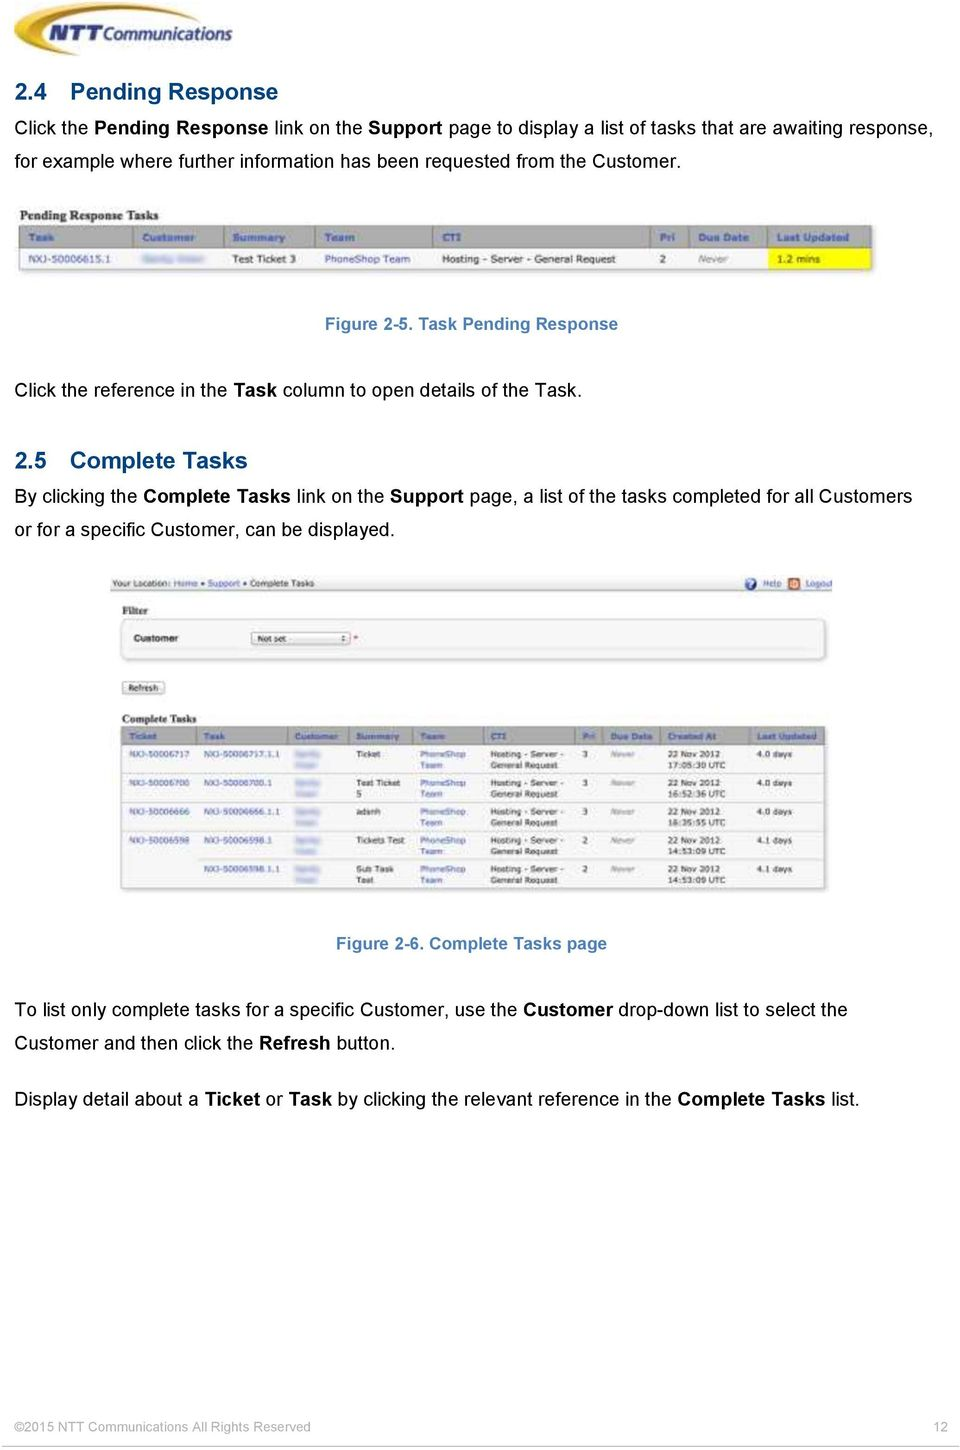 Figure 2-6. Complete Tasks page To list only complete tasks for a specific Customer, use the Customer drop-down list to select the Customer and then click the Refresh button.